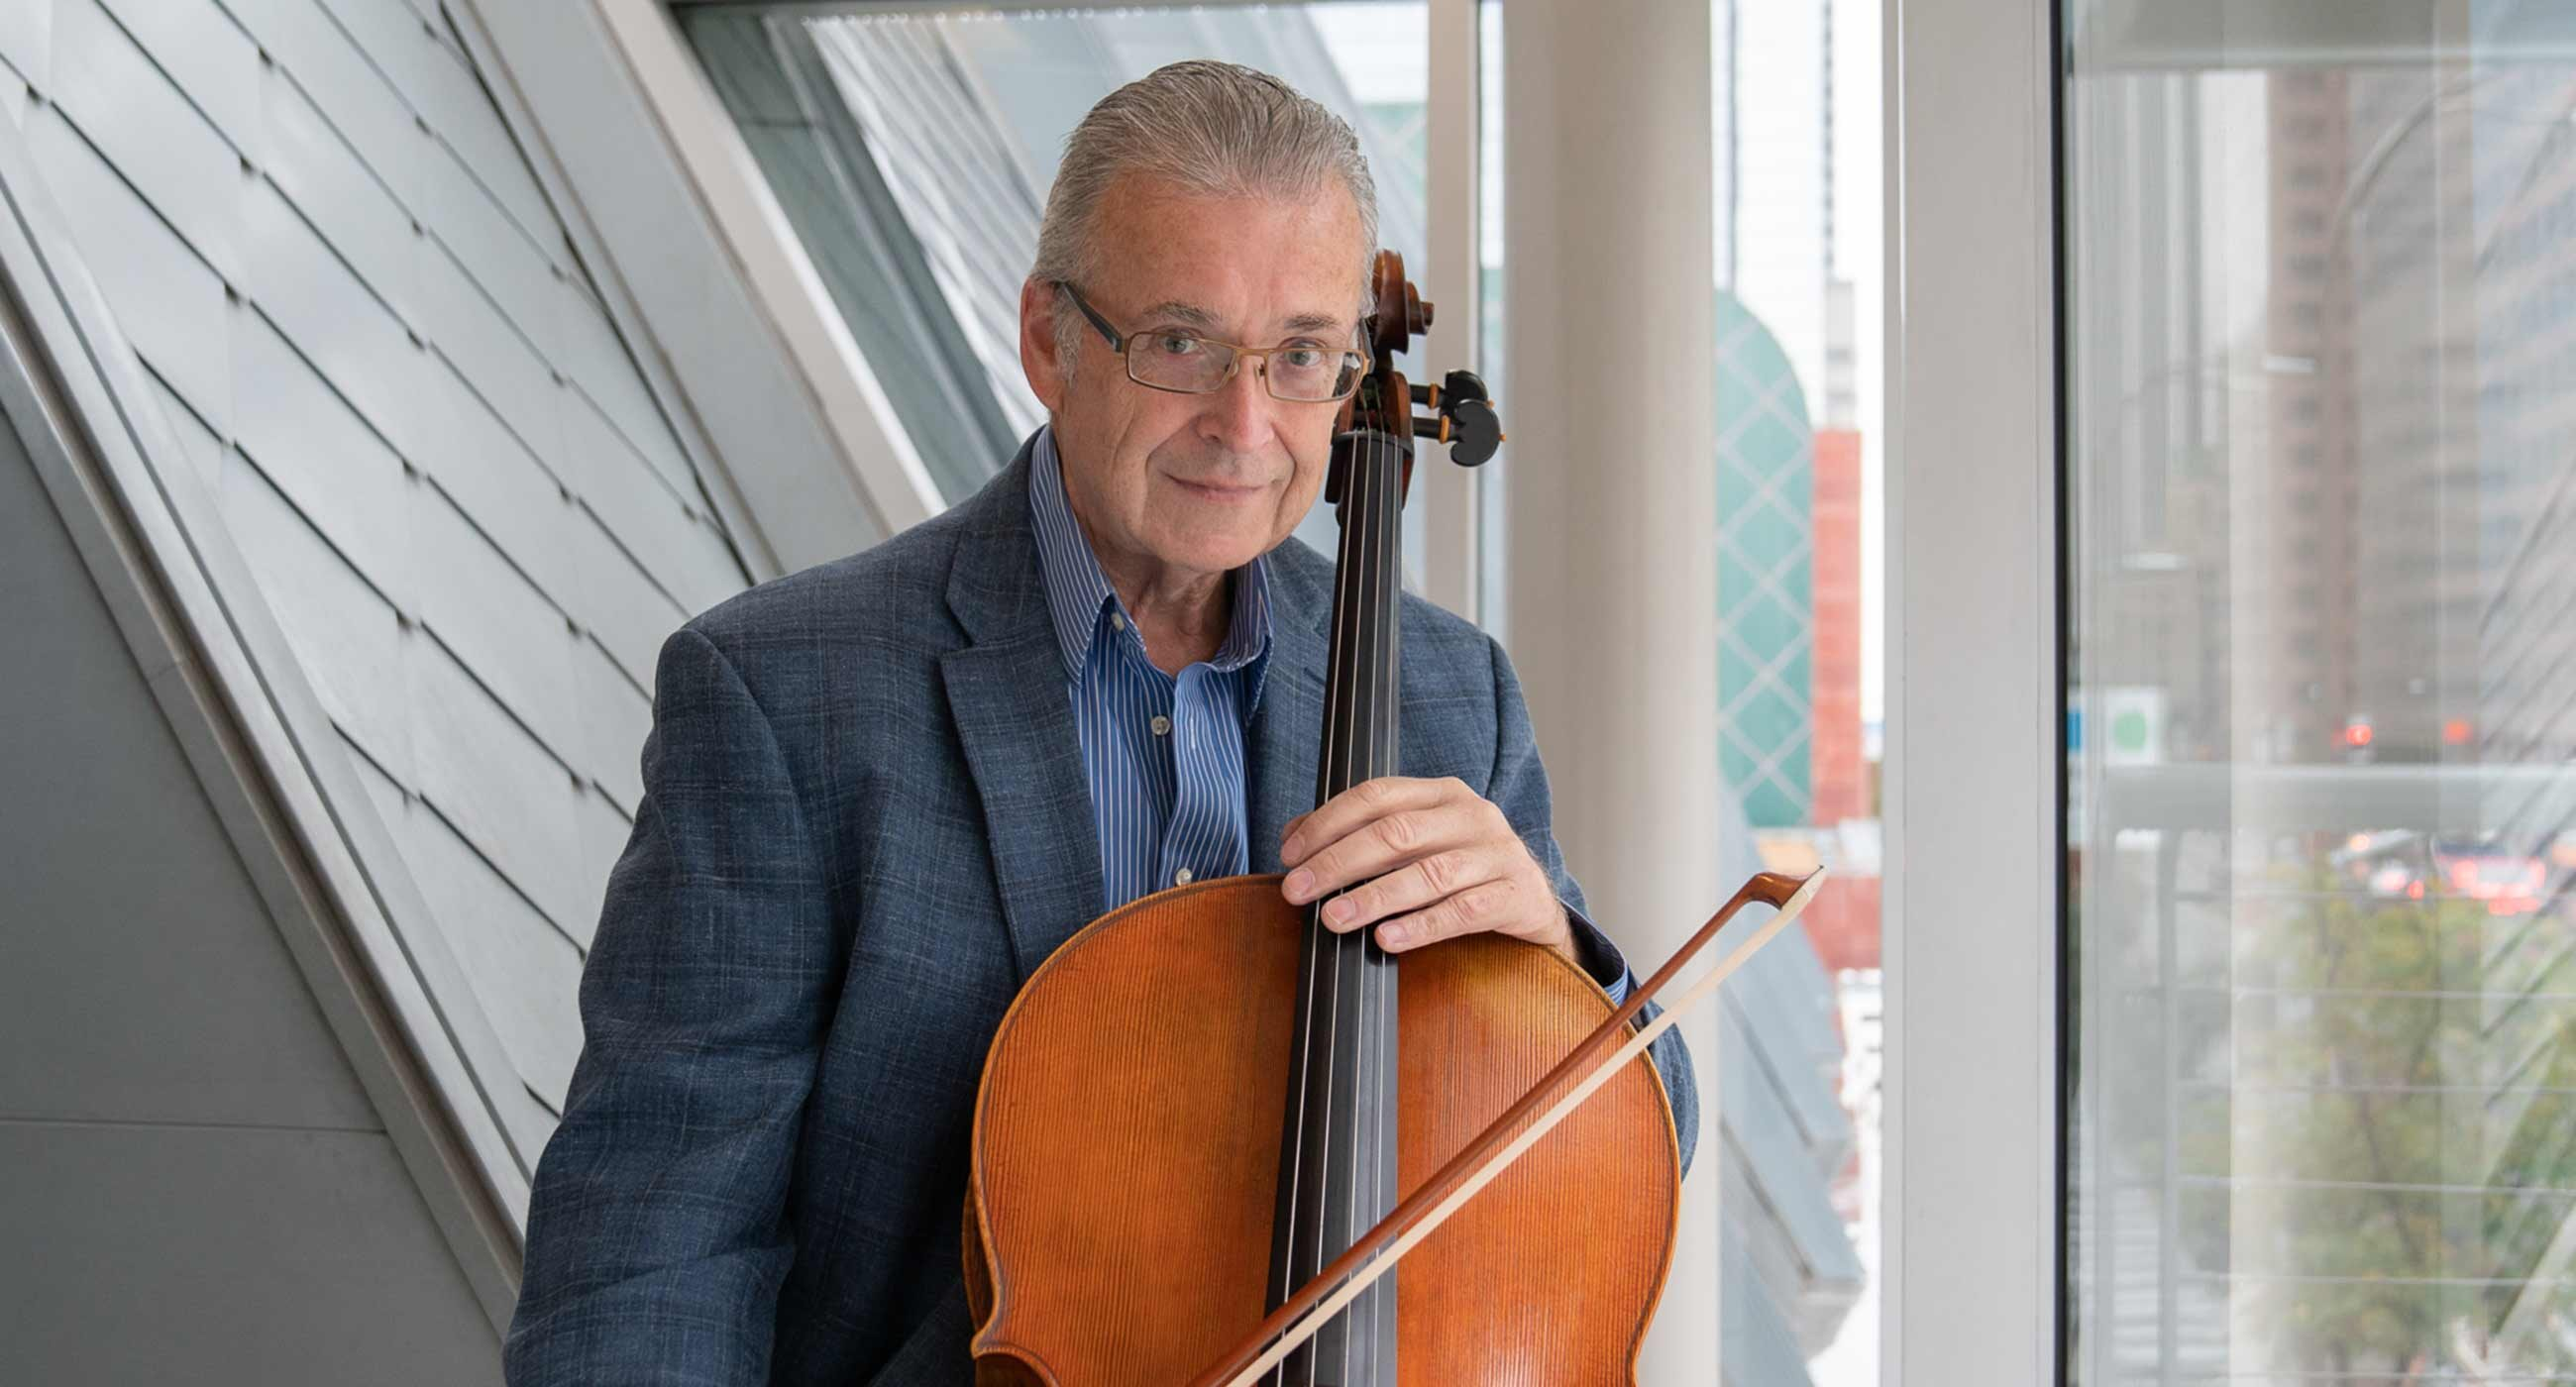 Headshot of John Walz holding a cello in front of window